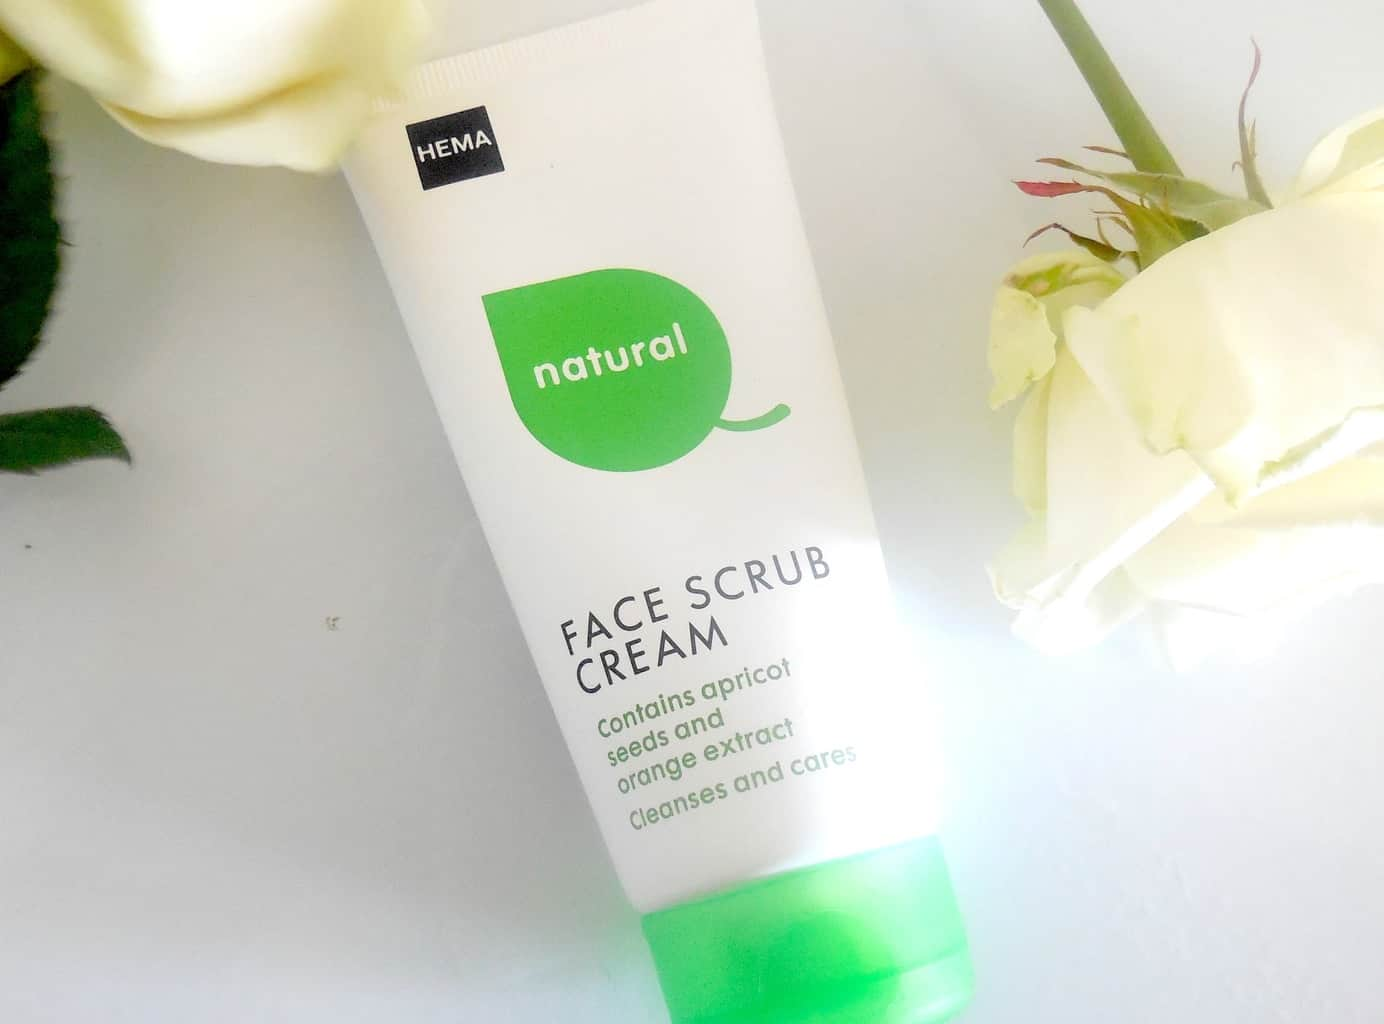 hema natural face scrub